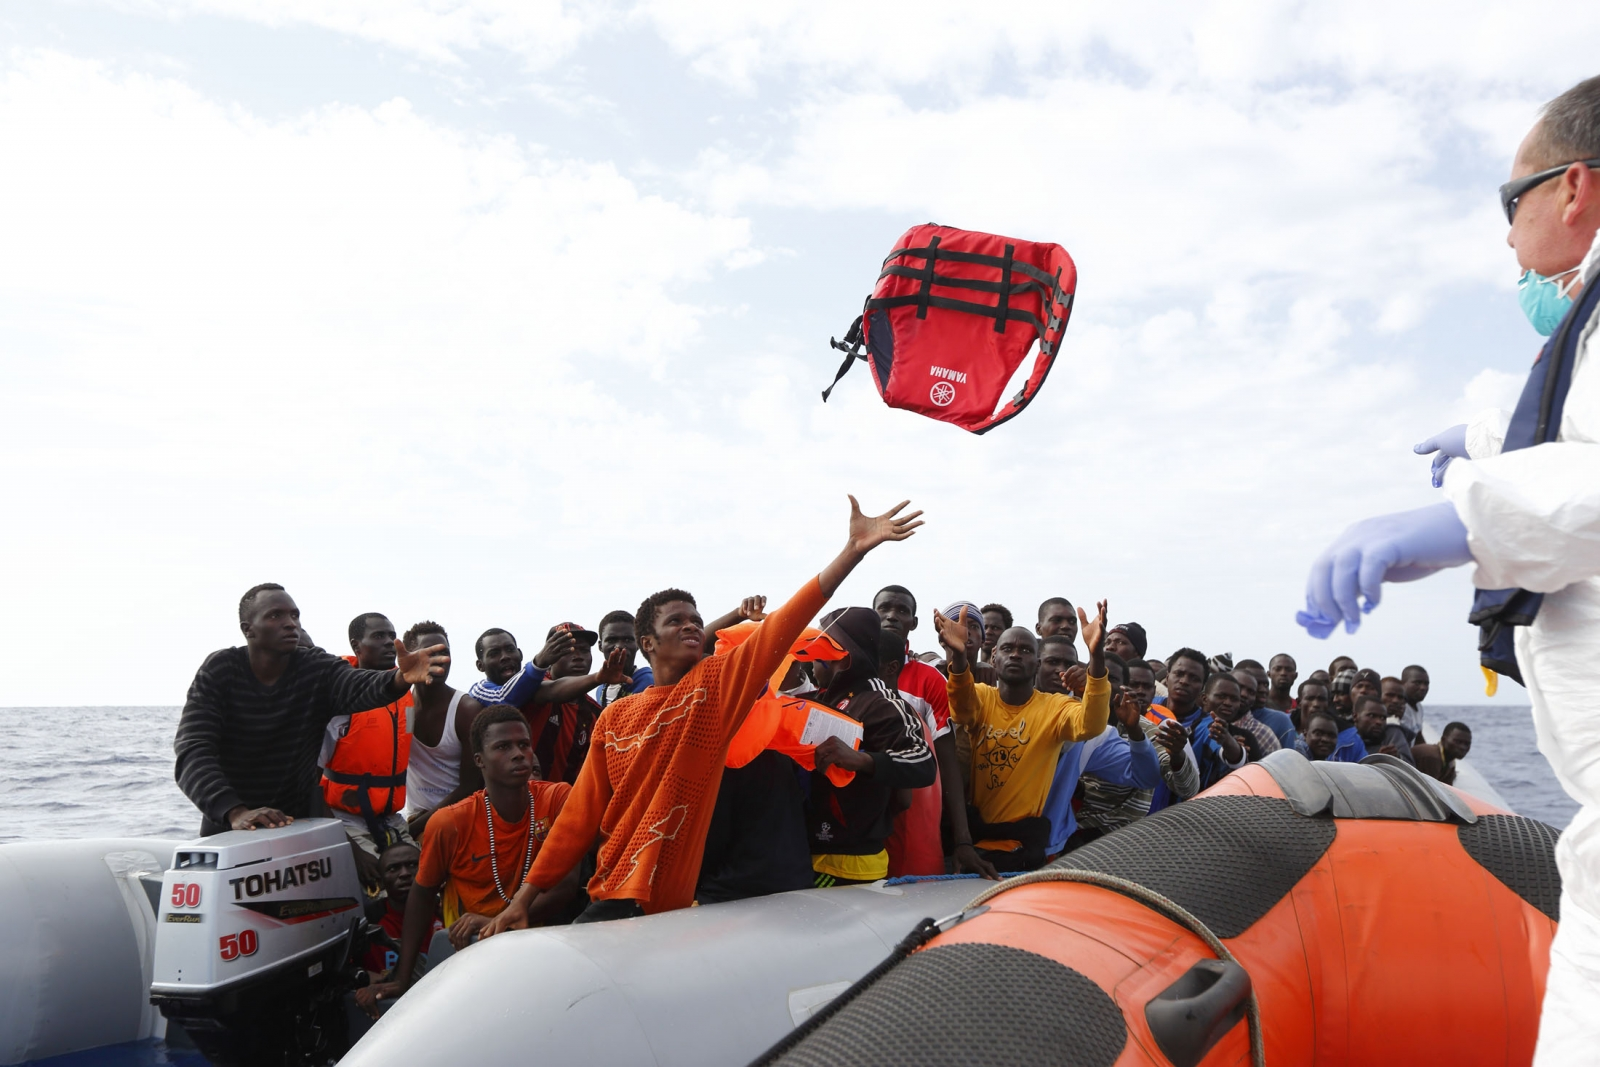 MOAS crew throwing life jackets to migrants